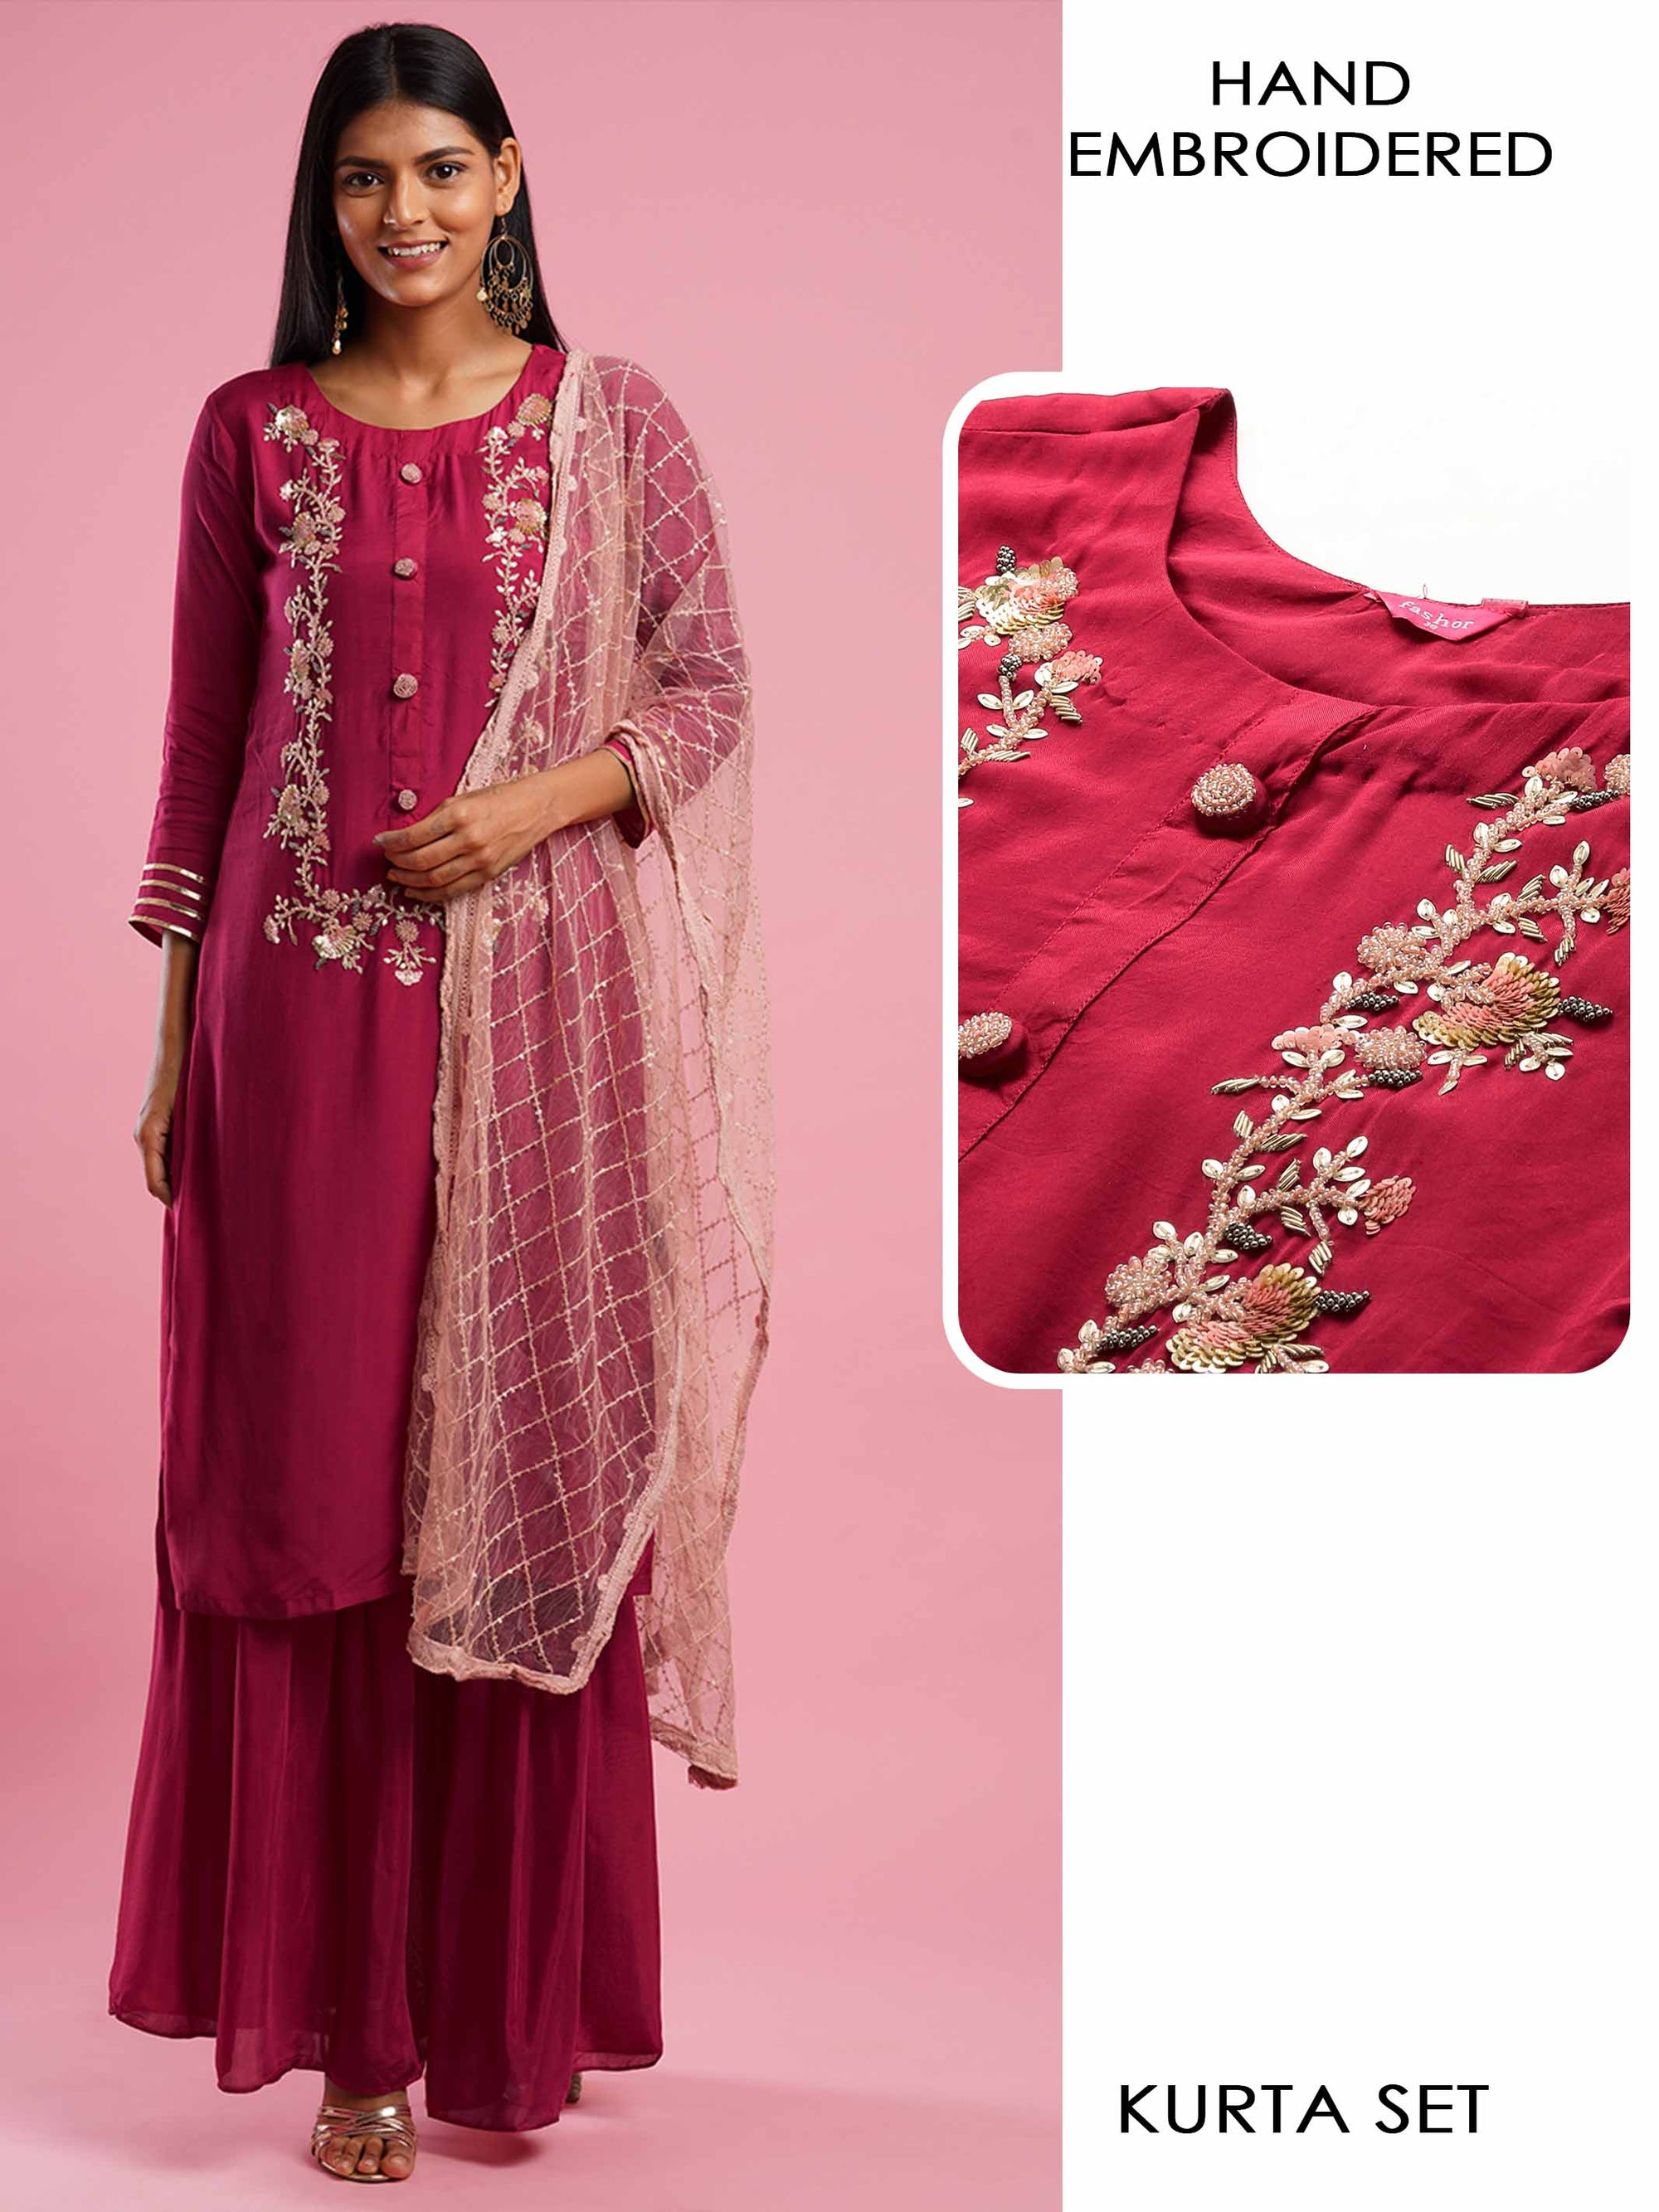 Floral Hand Embroidered Kurta with Solid Sharara & Ethnic Embroidered Dupatta - Pink